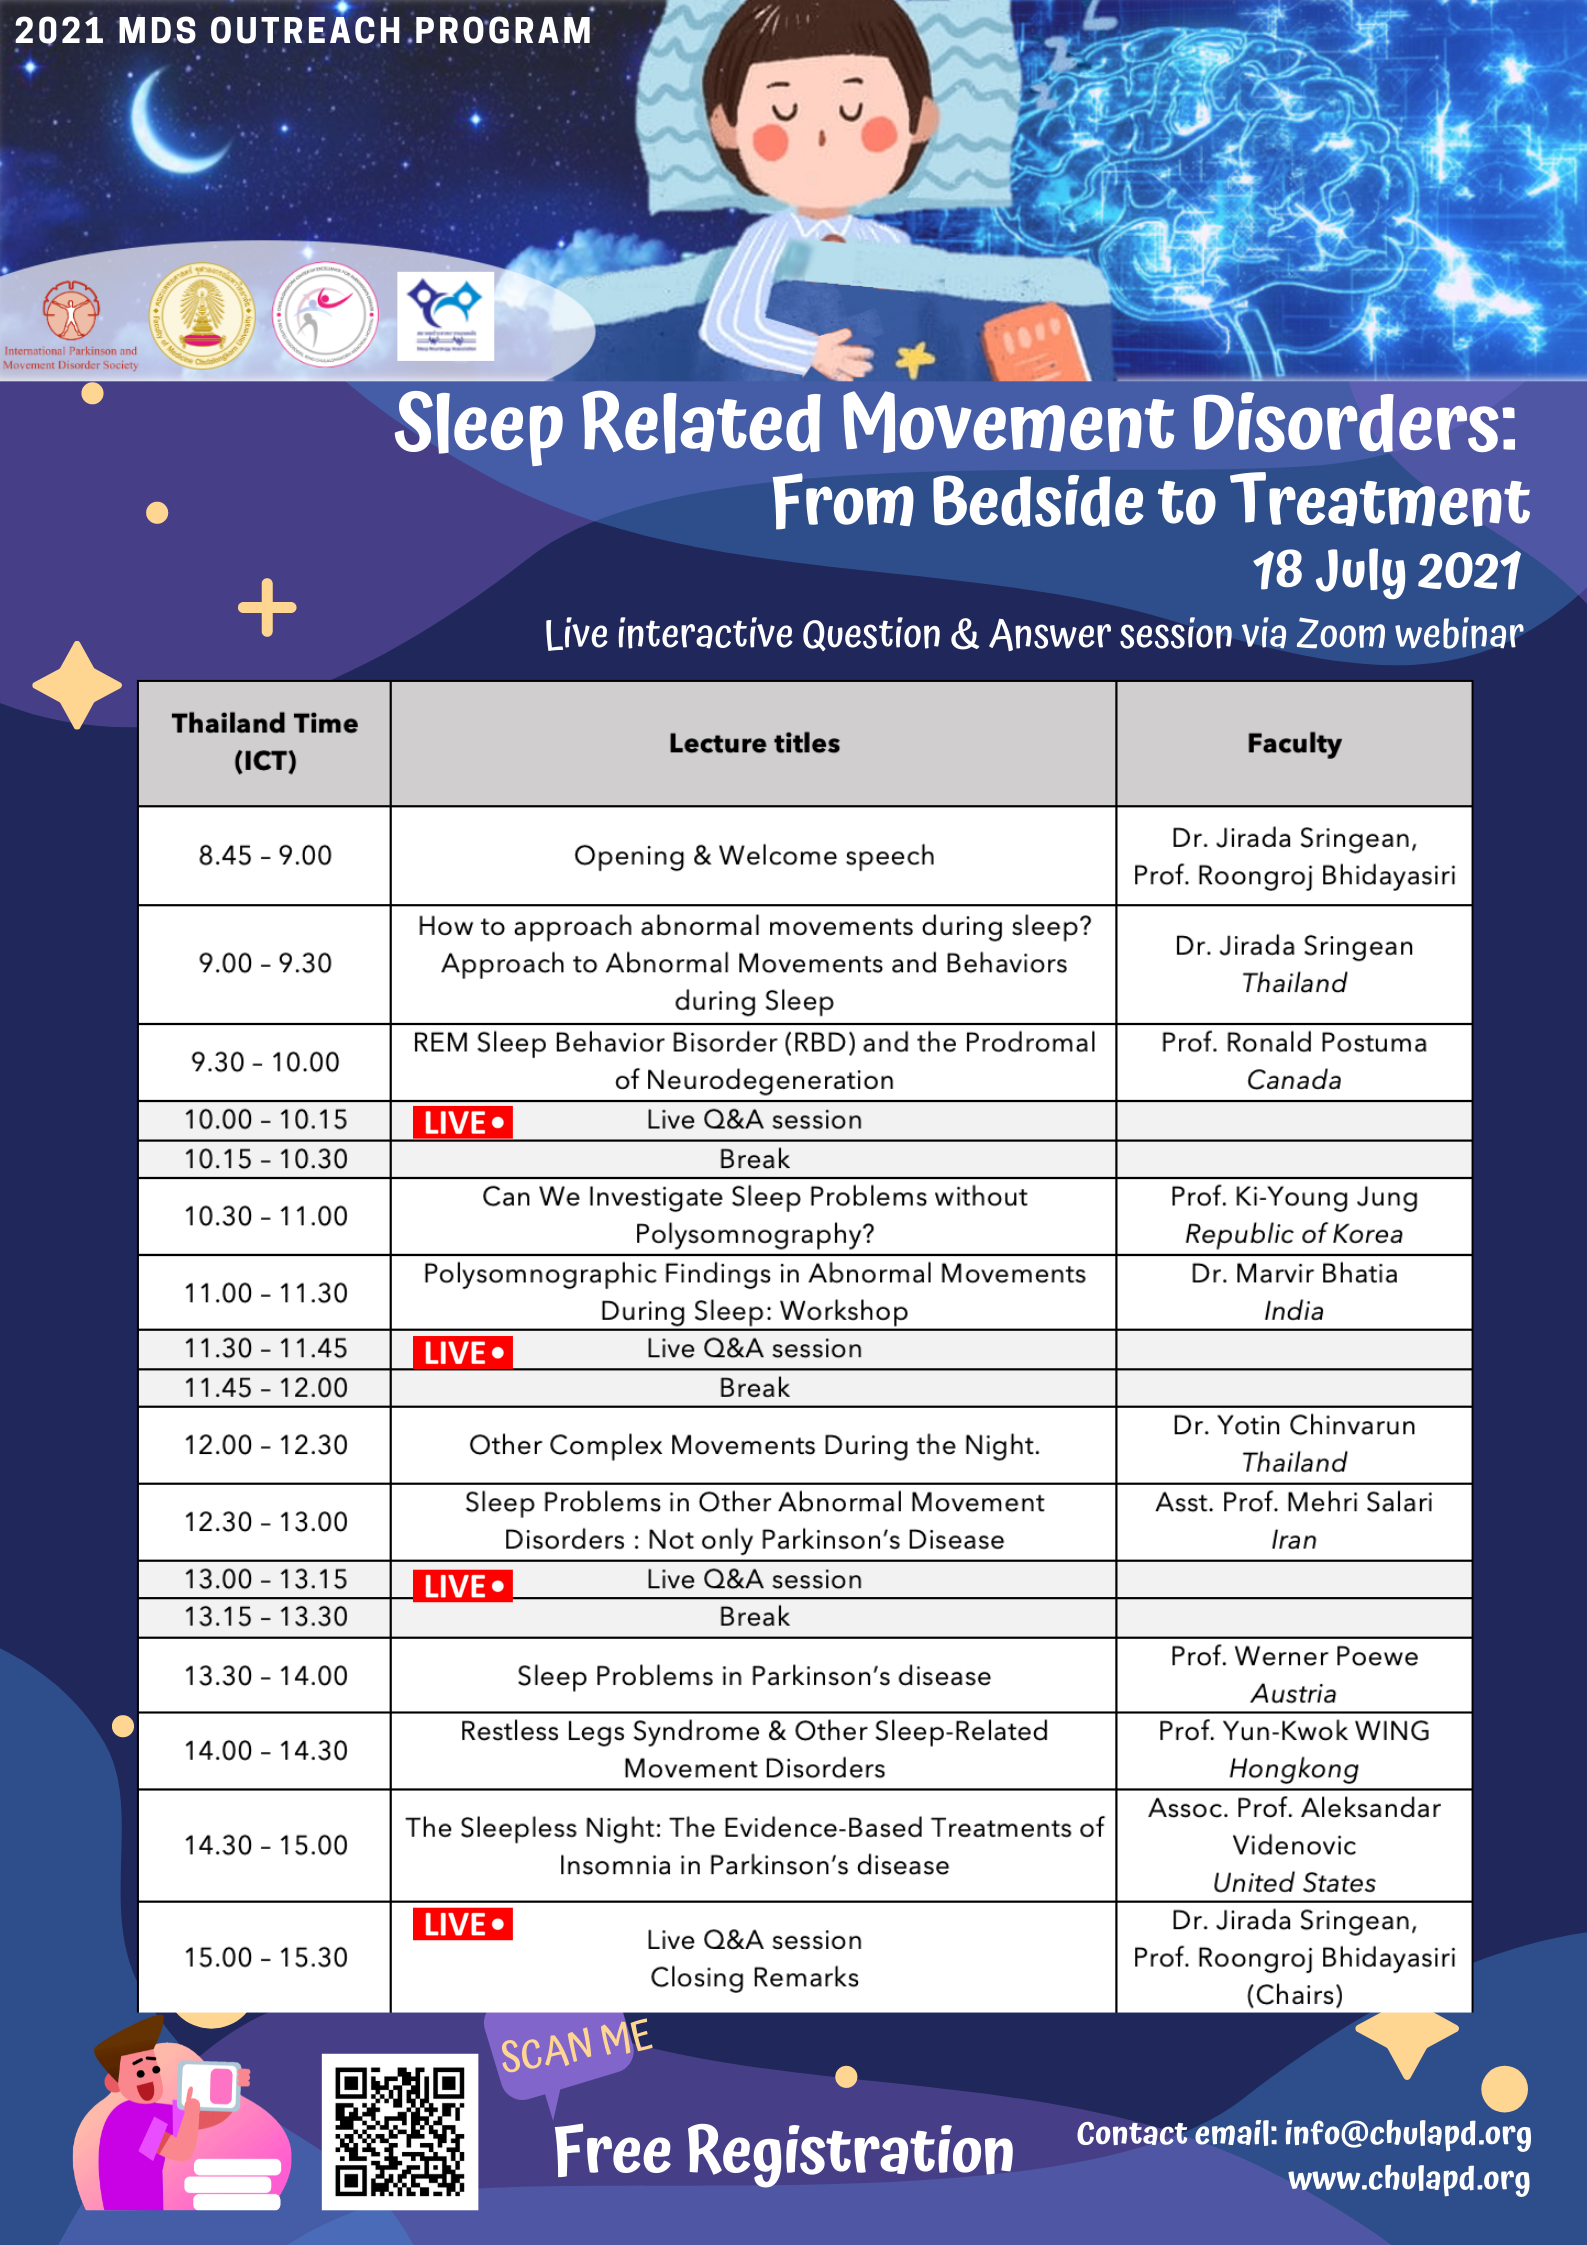 Sleep related movement disorders: From bedside the treatment